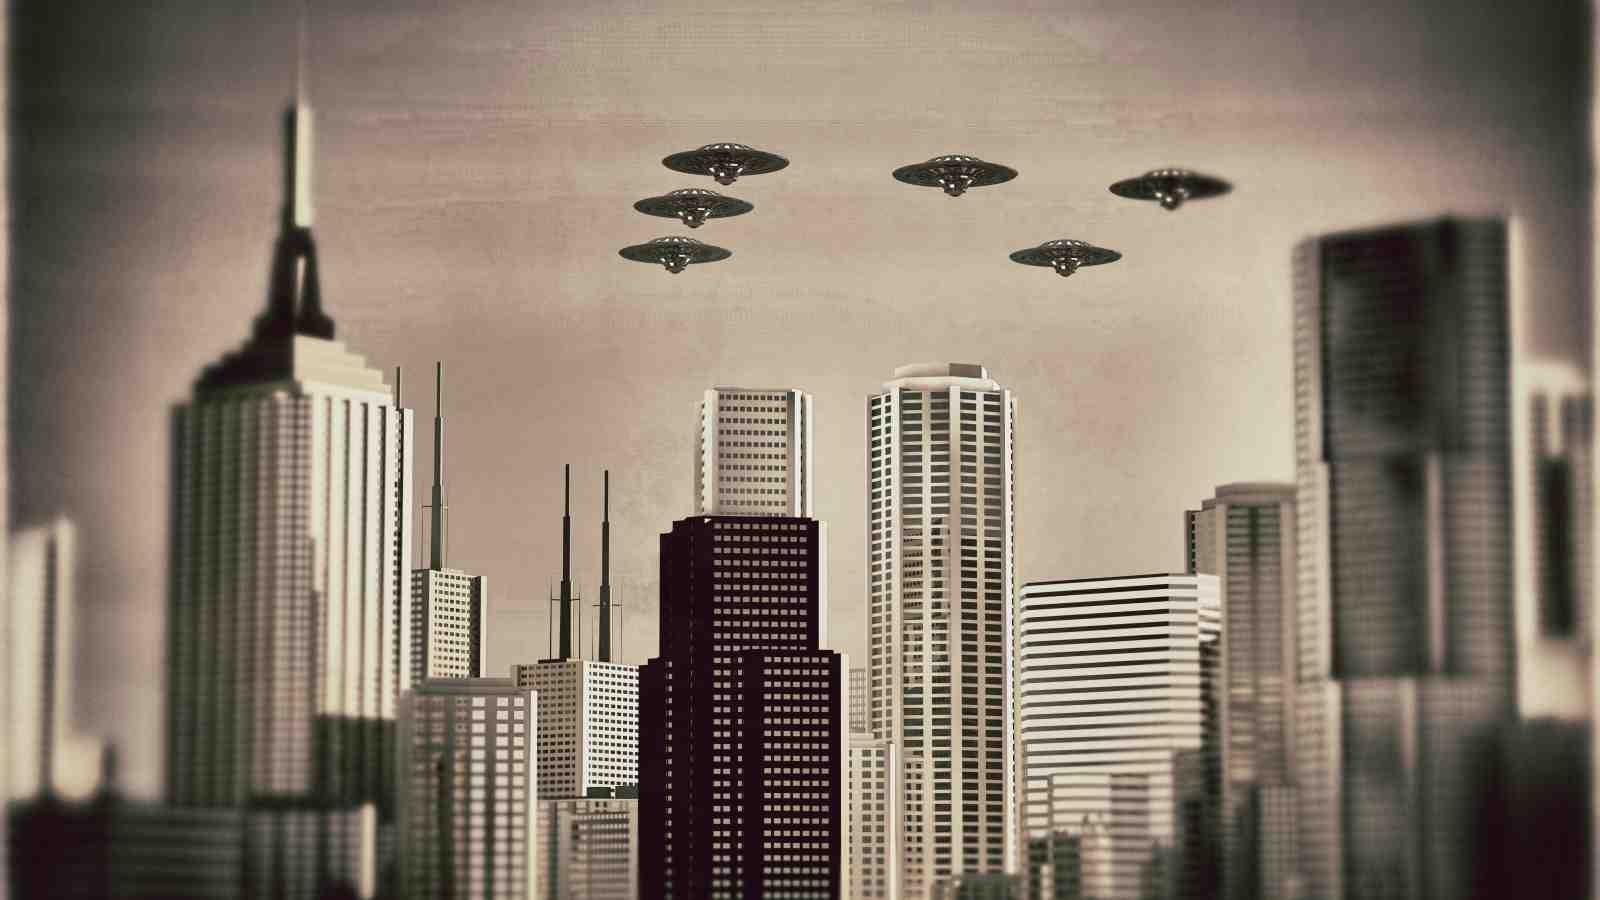 illustration of UFOs flying in formation above skyscrapers